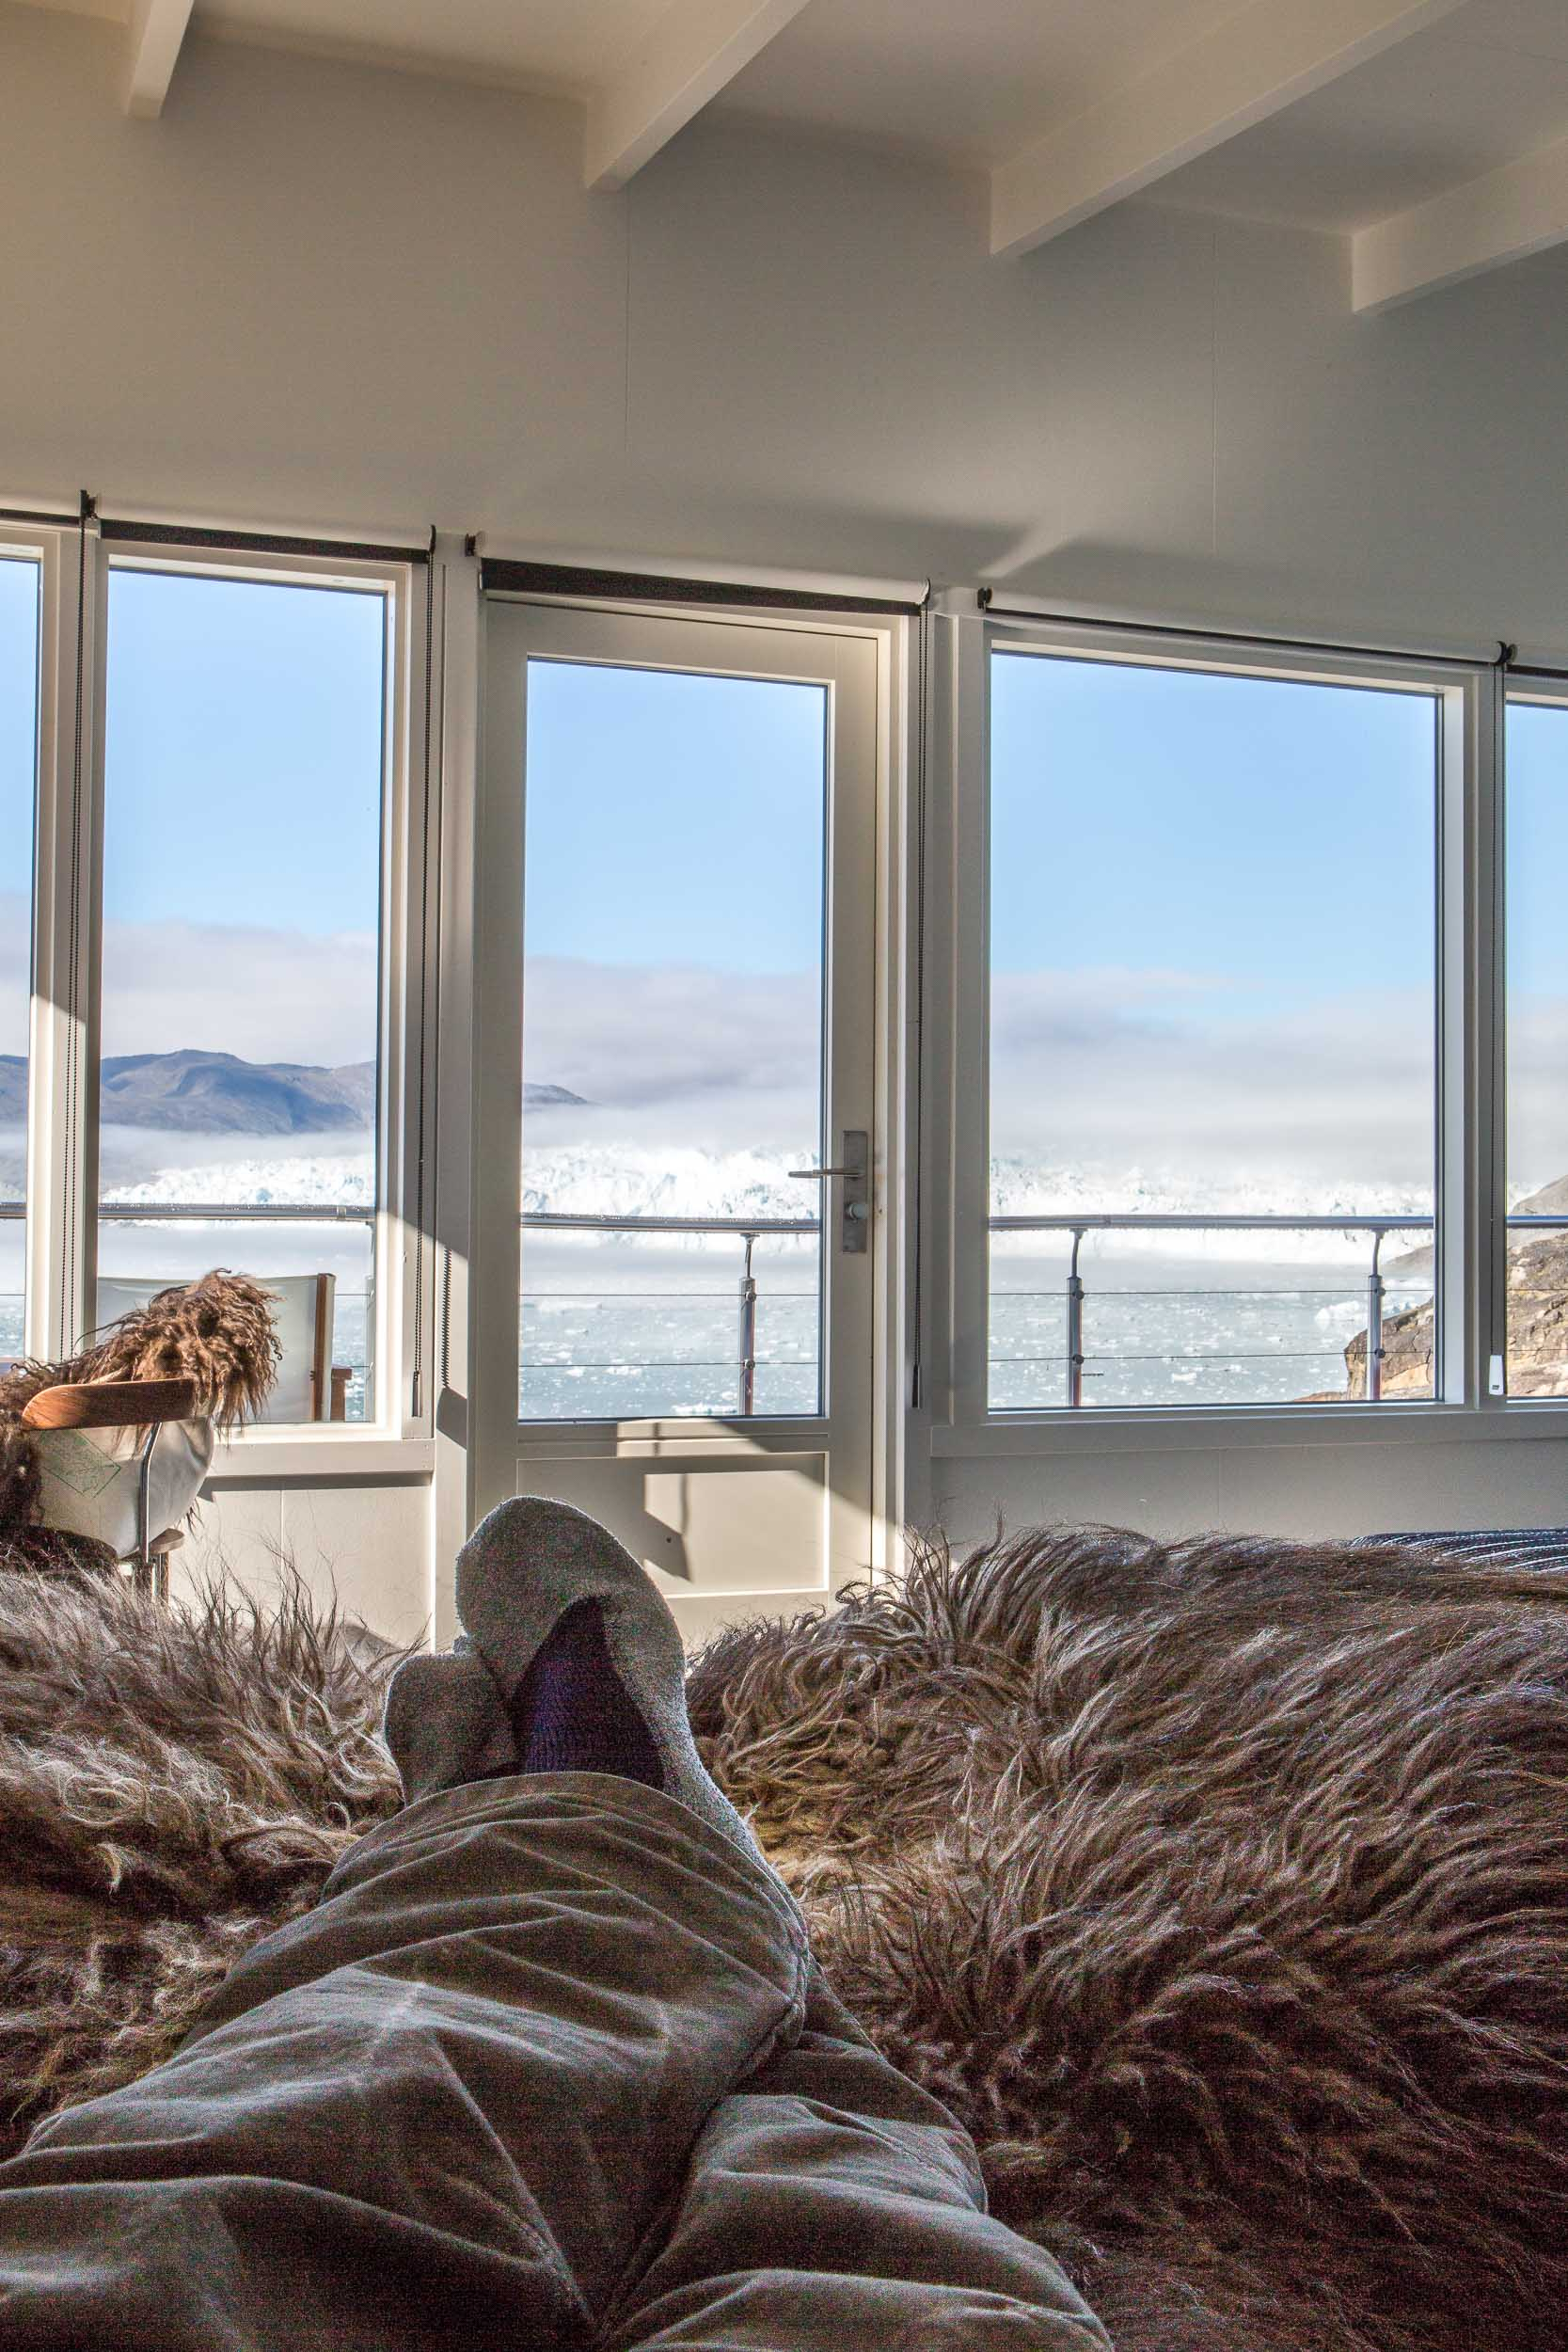 Luxury Travel in Greenland, View from the Comfort Hut bed, Hotel Eqi (1 of 1).jpg